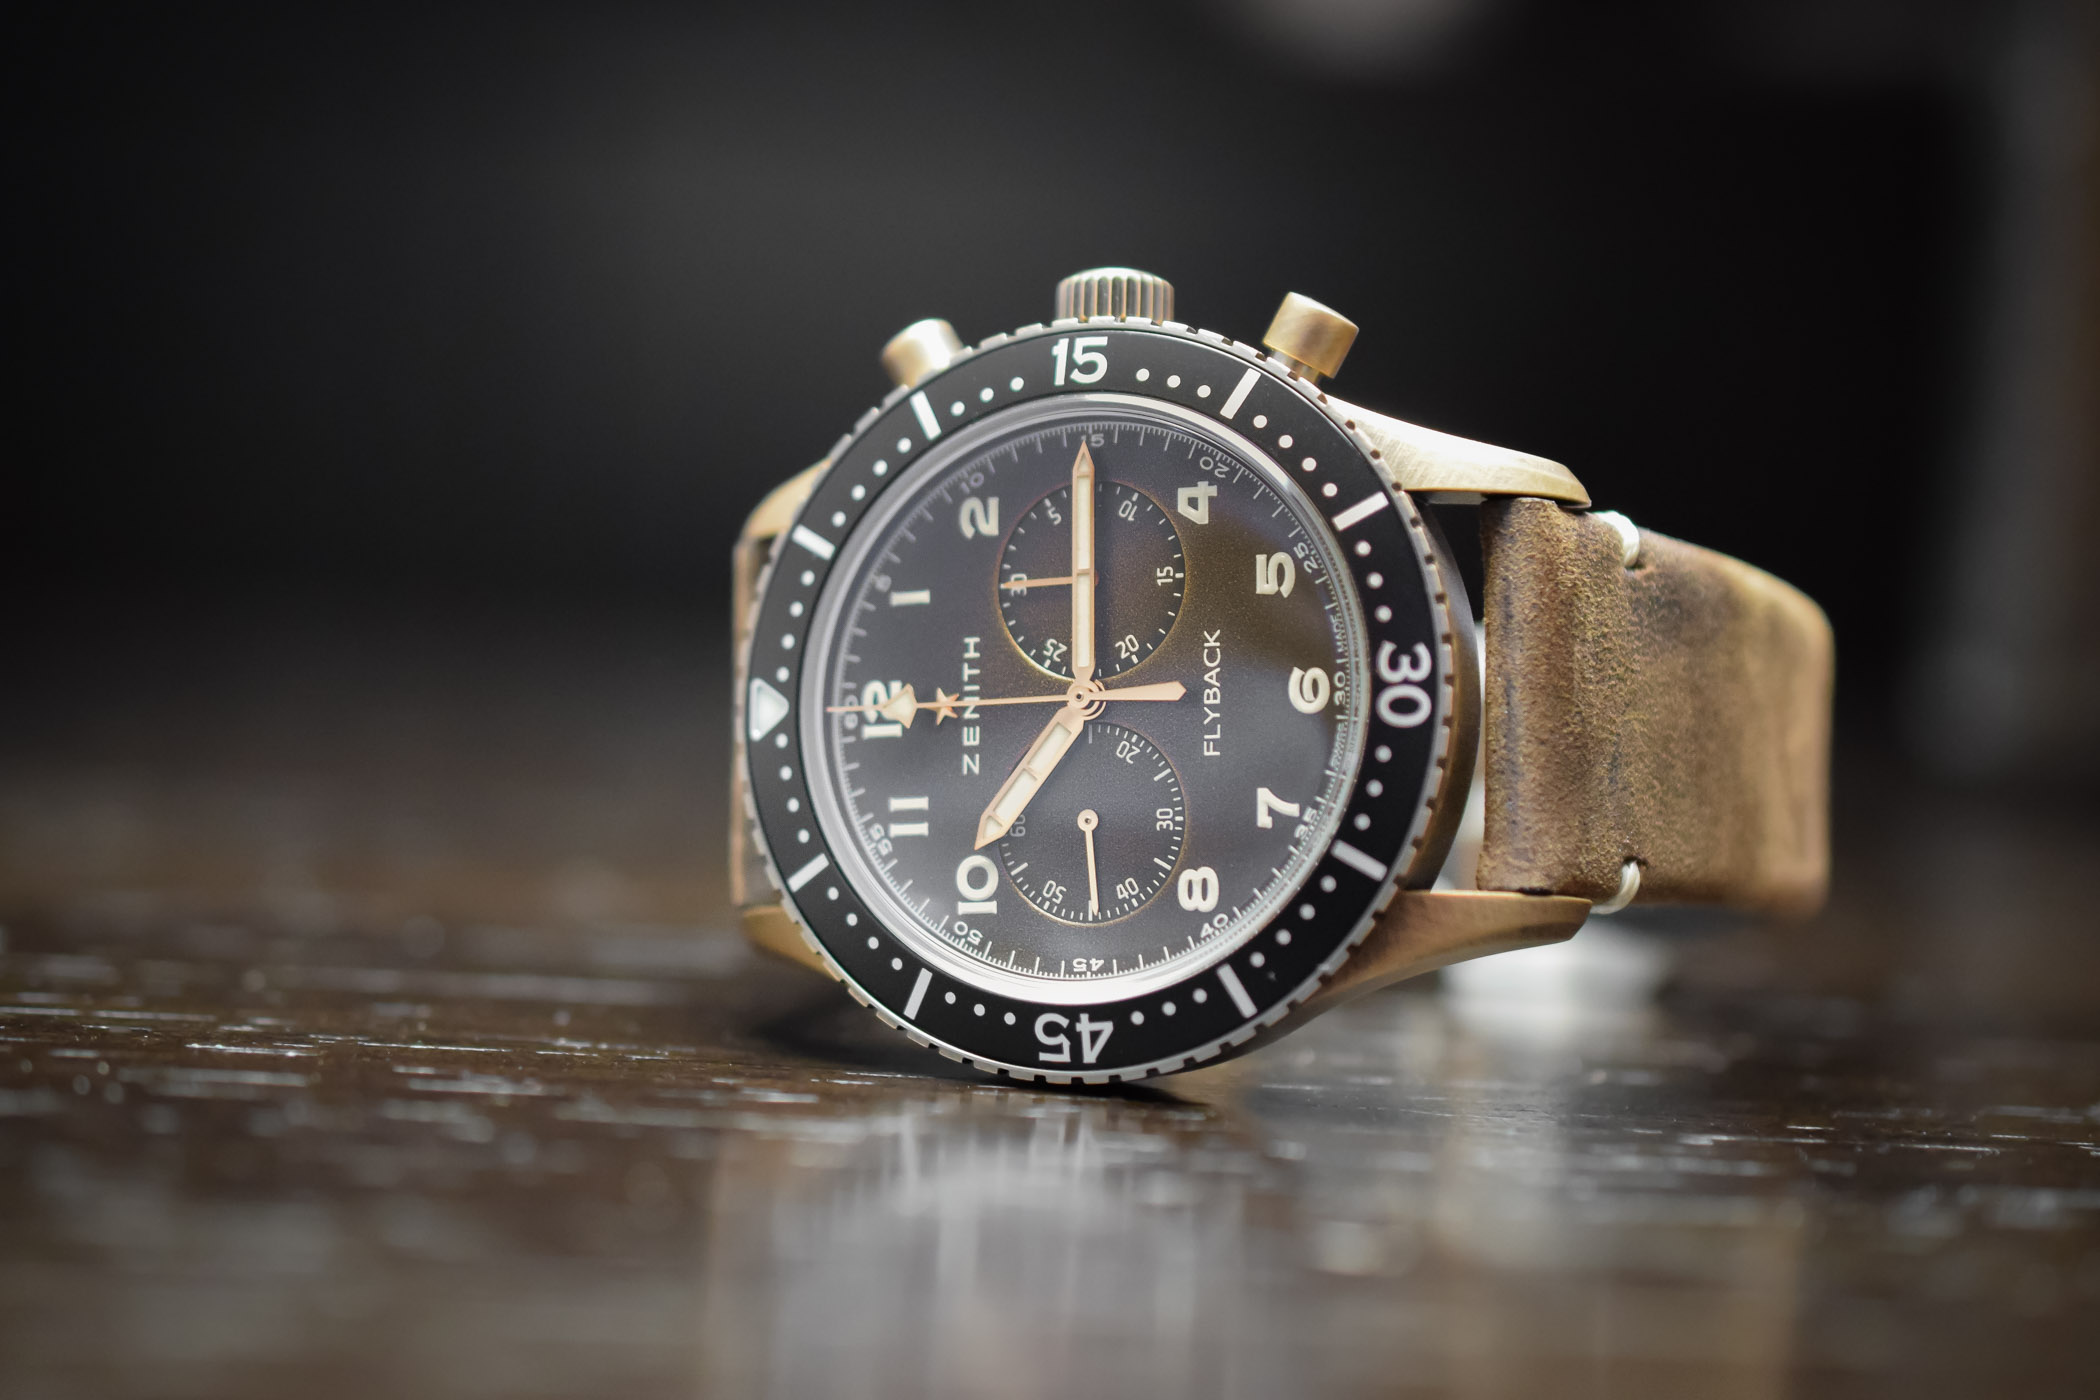 The New Zenith Pilot Cronometro Tipo CP-2 Flyback, with a Bronze or Aged Steel Case